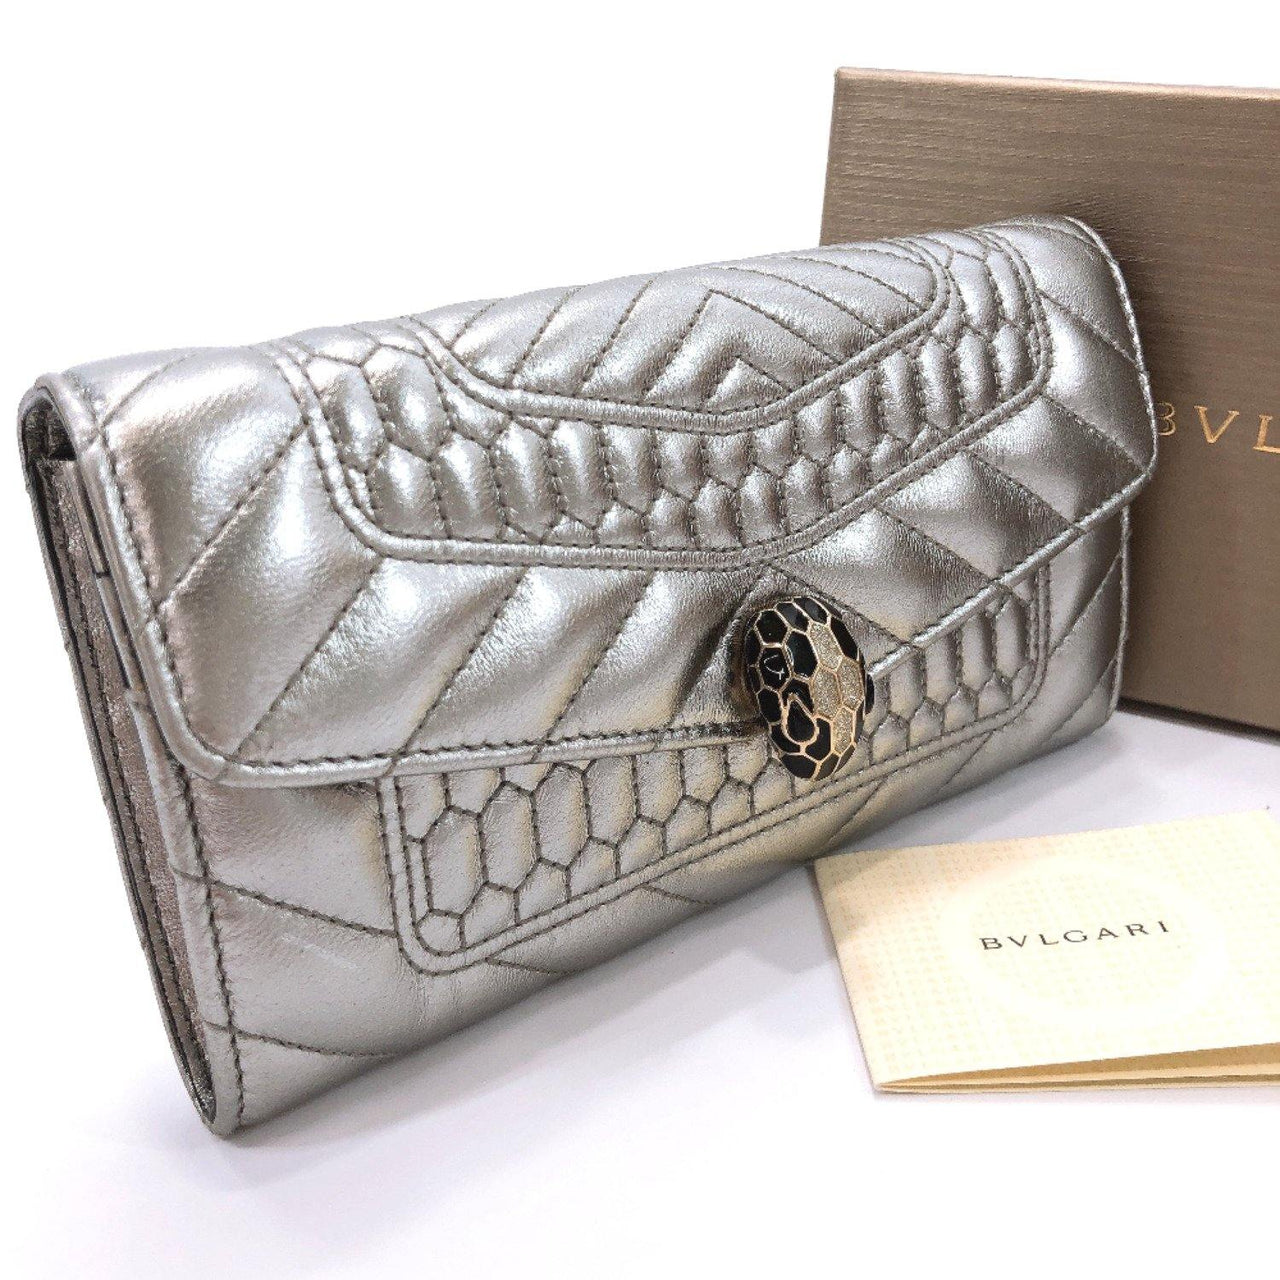 BVLGARI purse Snake leather Silver Women Used - JP-BRANDS.com